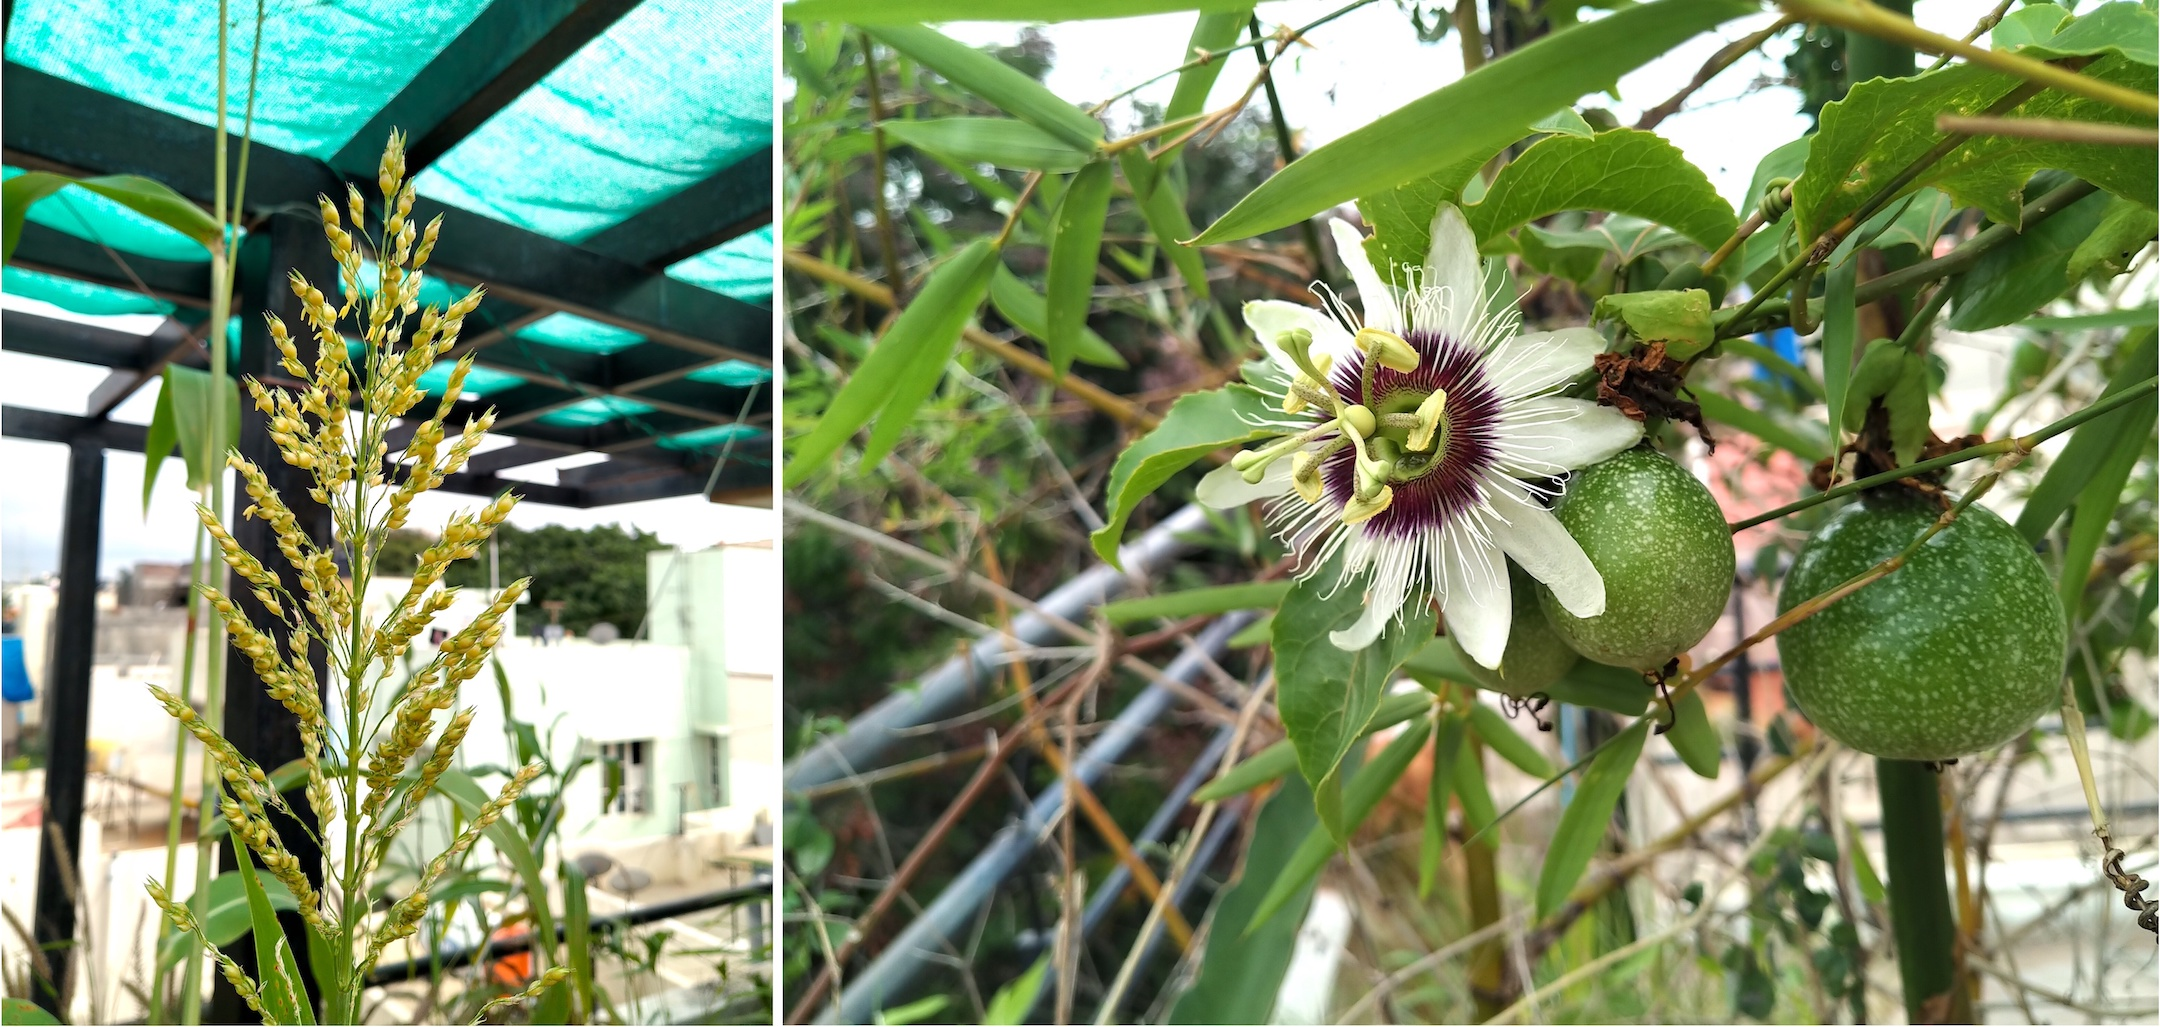 Sorghum (left) grew easily and fast on my terrace, while I also harvested many a crop of passionfruit (right) that had climbed over the bamboo. Photos: Nisarg Prakash